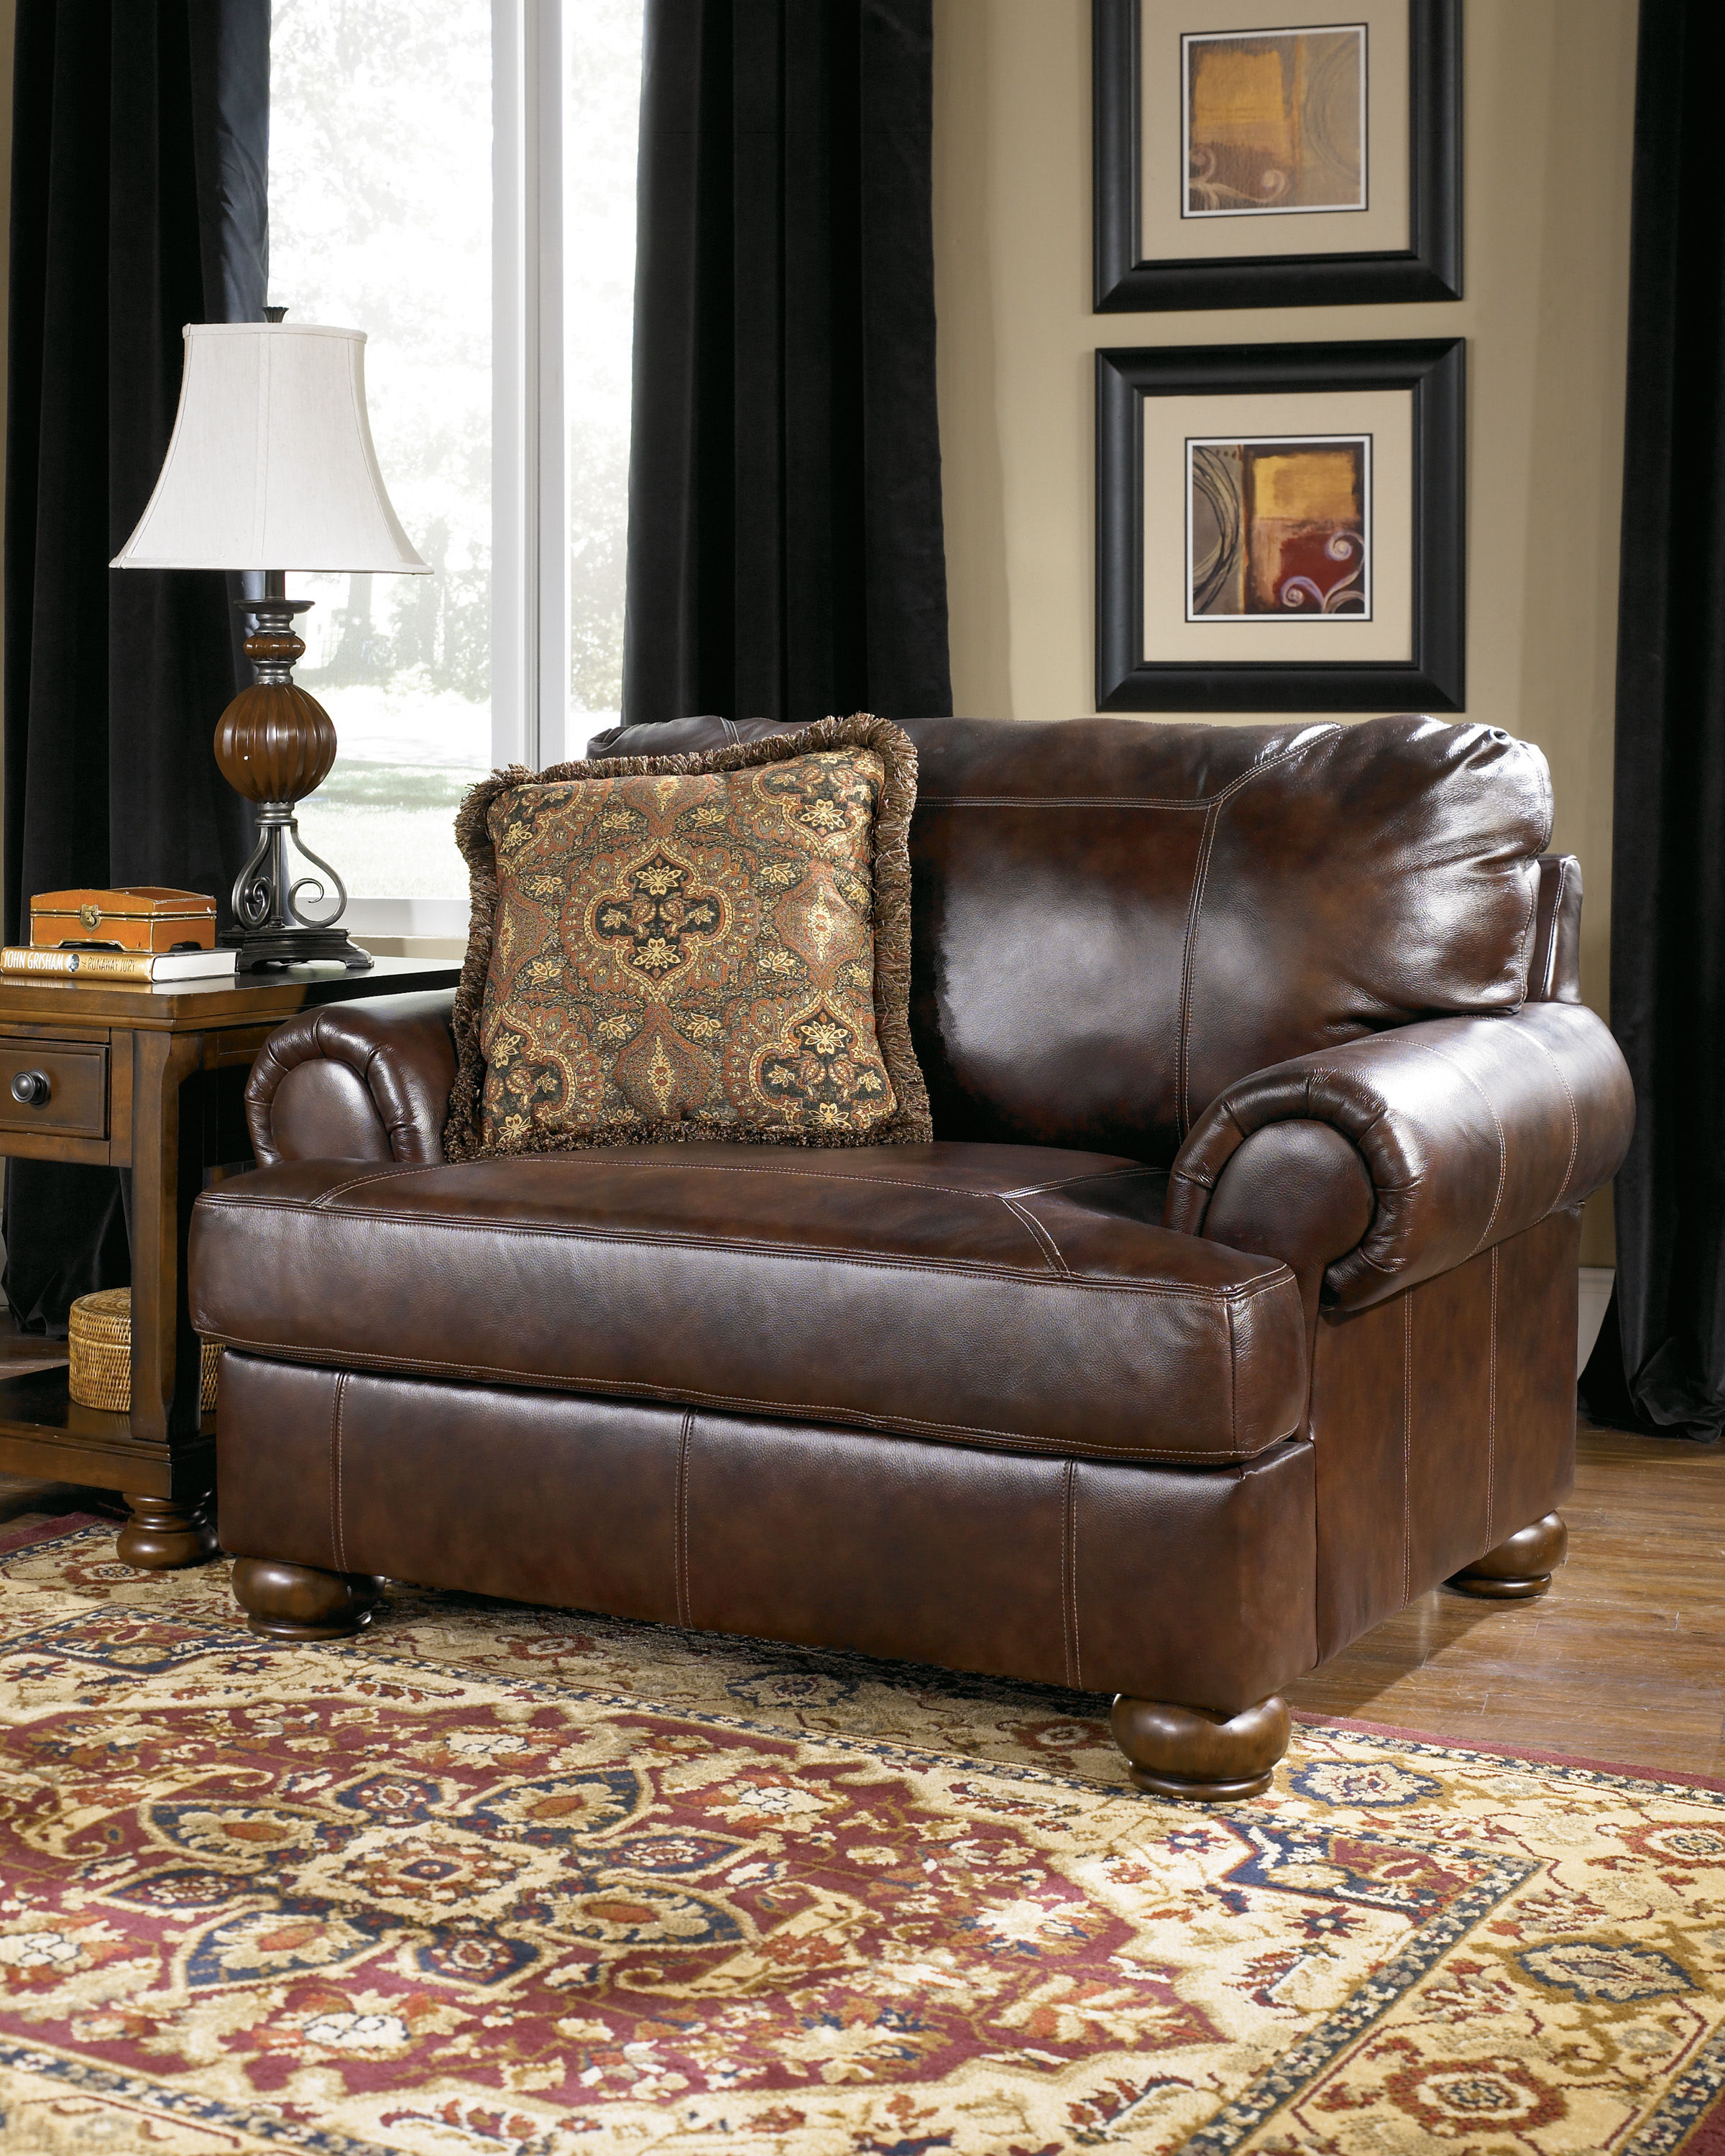 dealer accent w furniture locator upholstered loose b item steel products ahfa seat yvette ashley chair cushion chairs